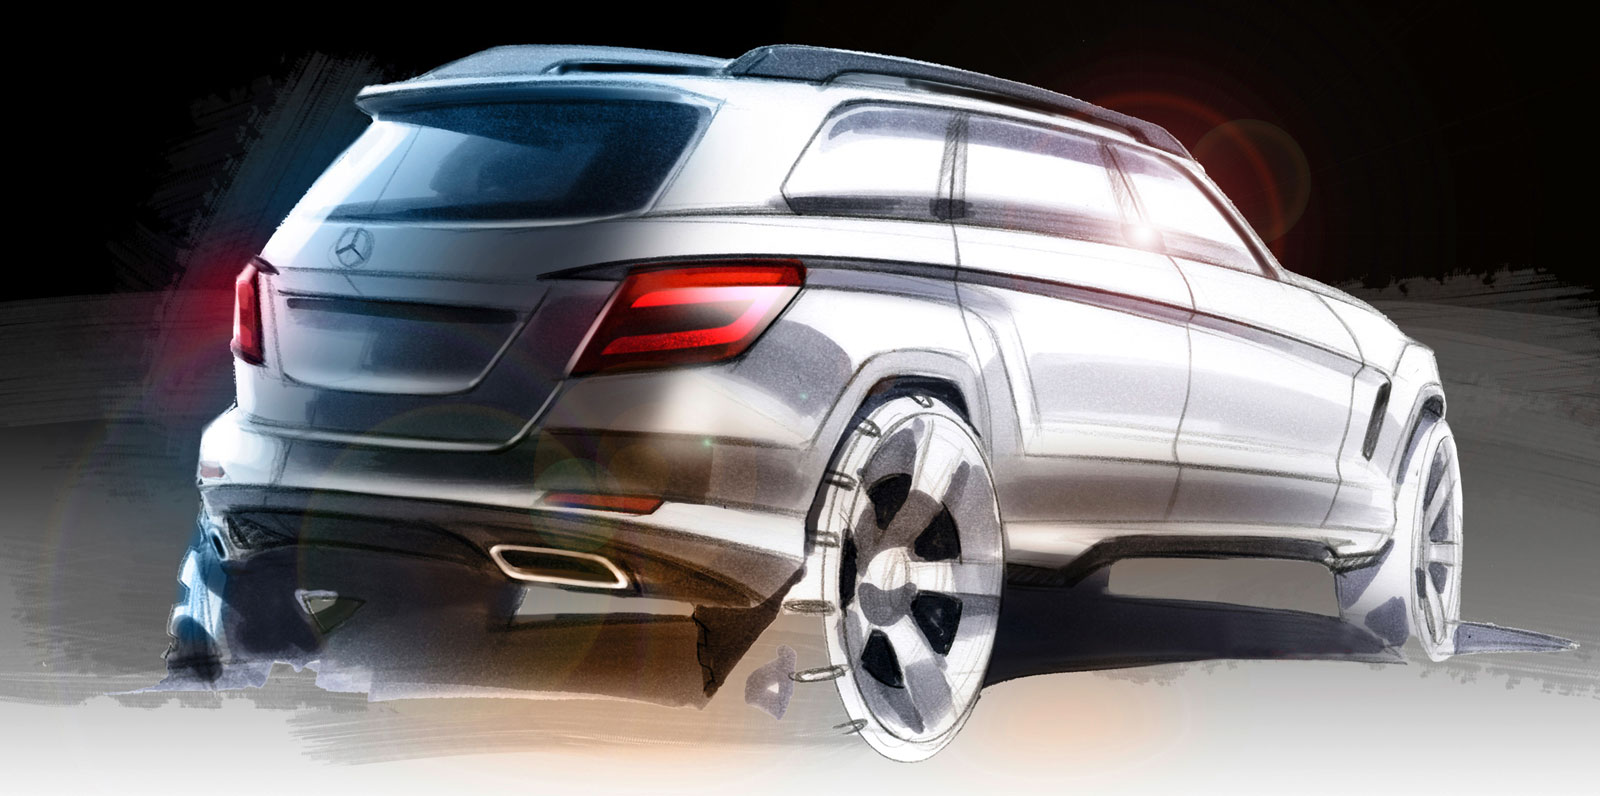 2008 mercedes benz glk design sketch car body design for 2008 mercedes benz truck